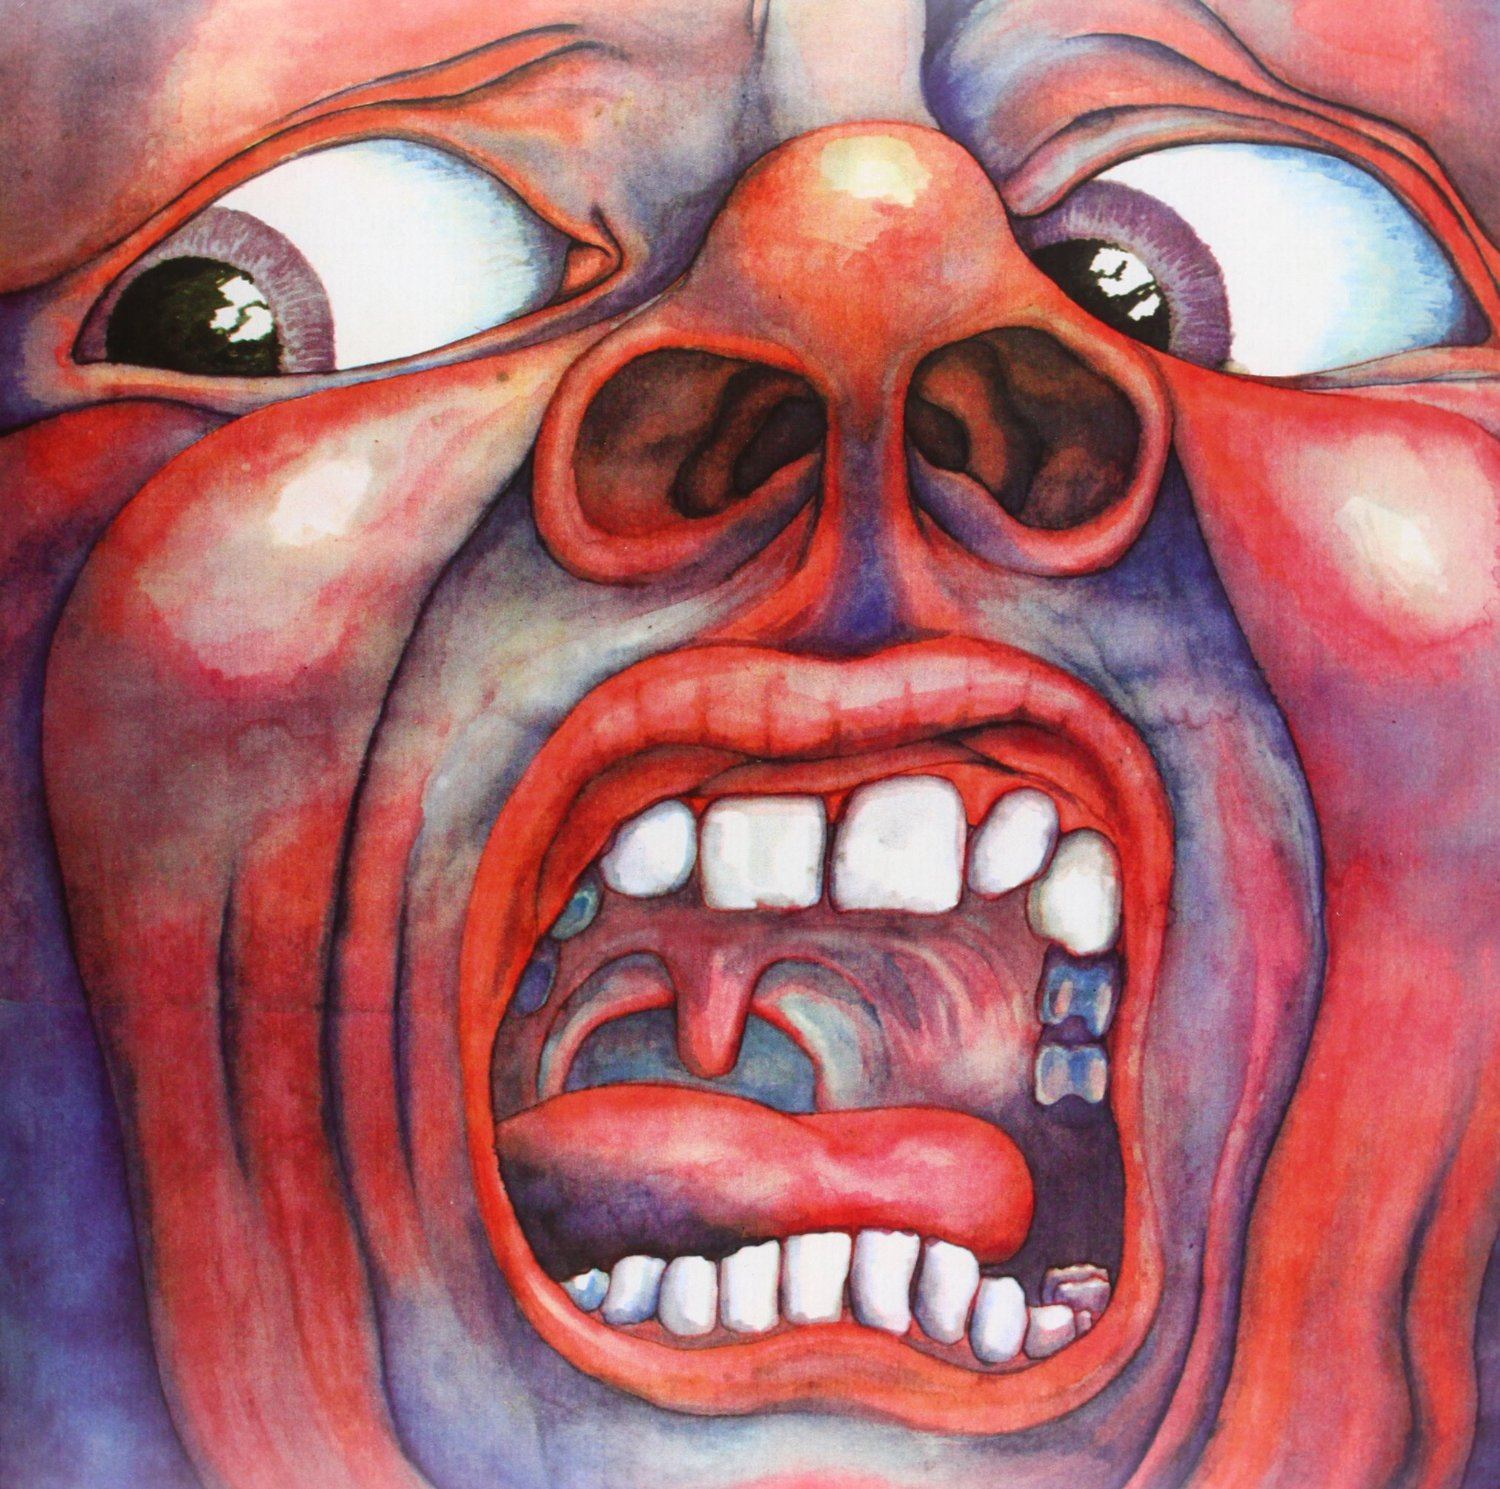 In The Court Of The Crimson King en.beatit.tv